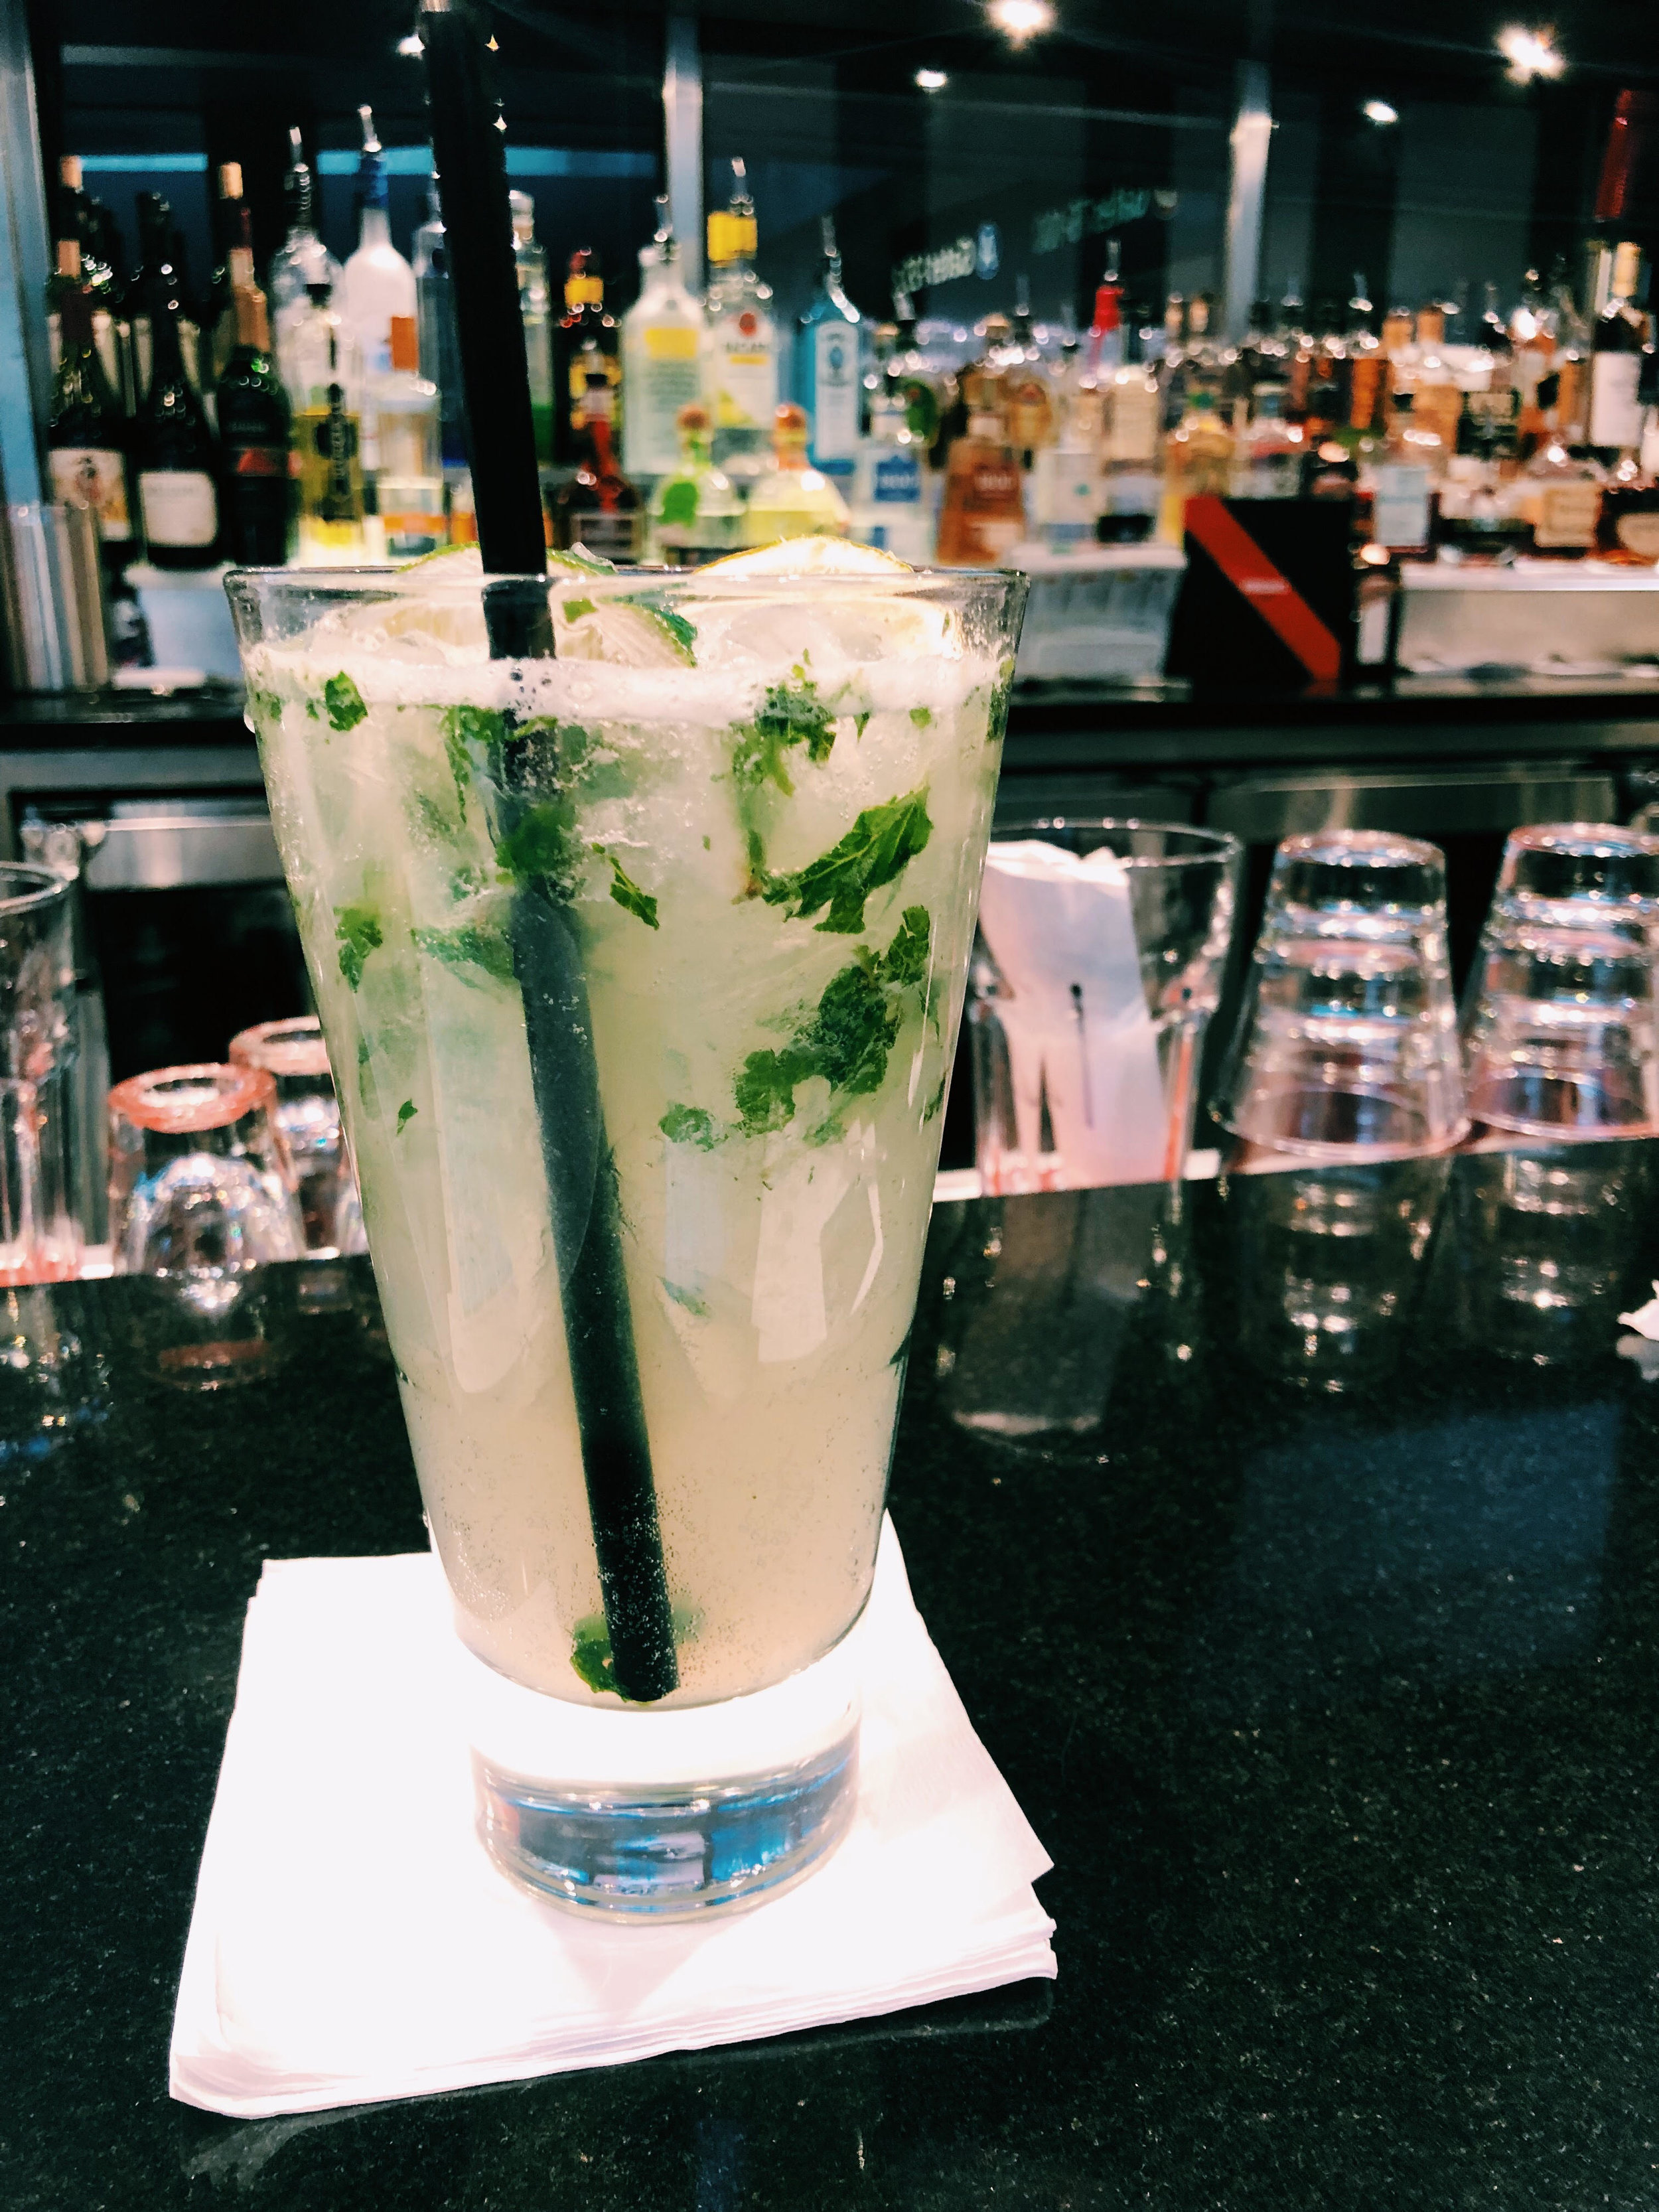 Classic Mojito also sweet! - Bold mintiness - lovin' that!